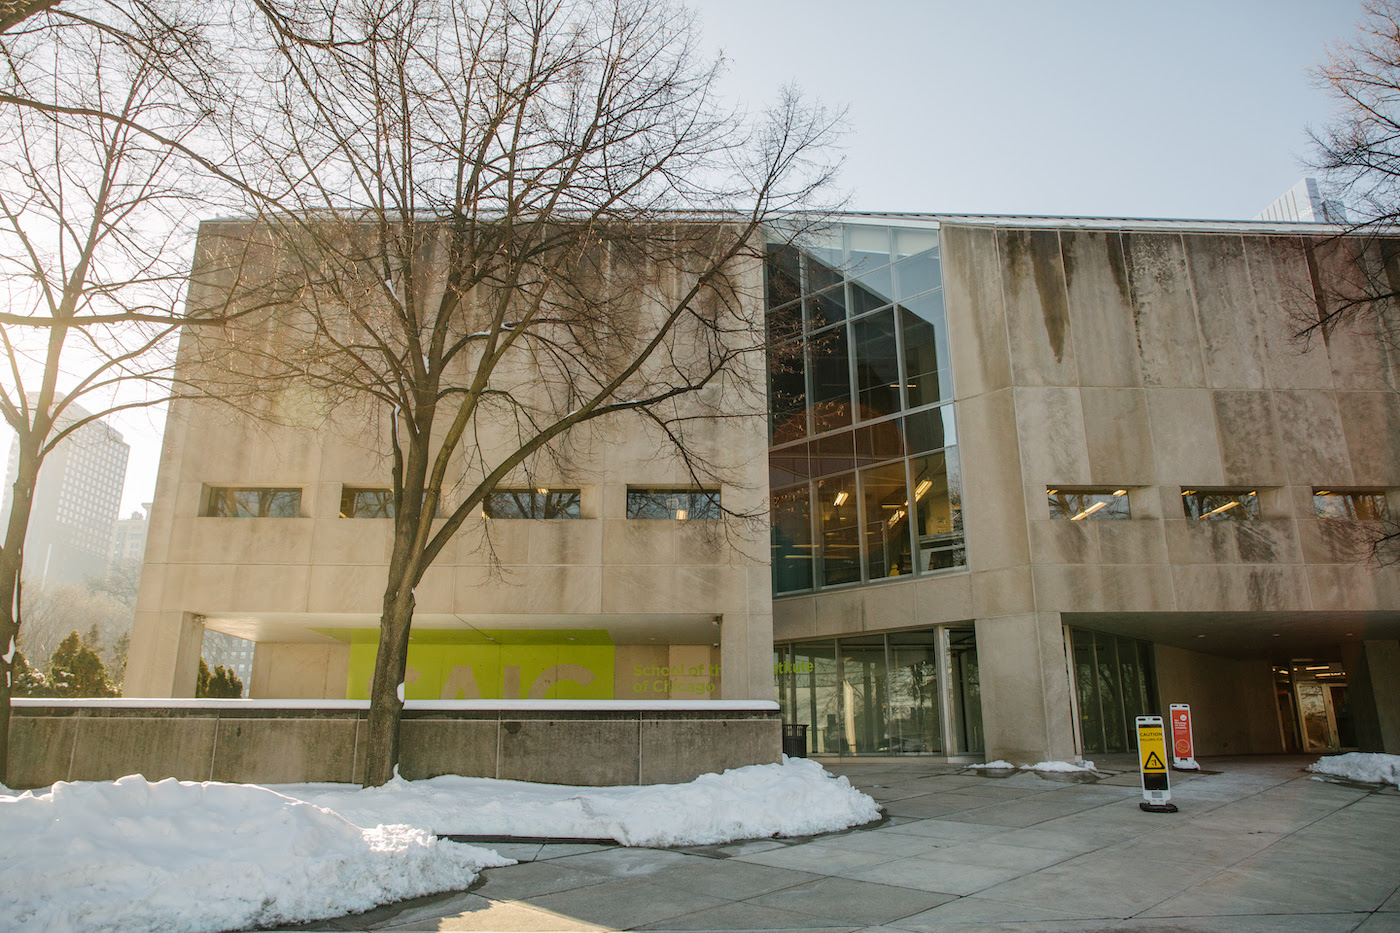 The exterior of an SAIC building in the winter